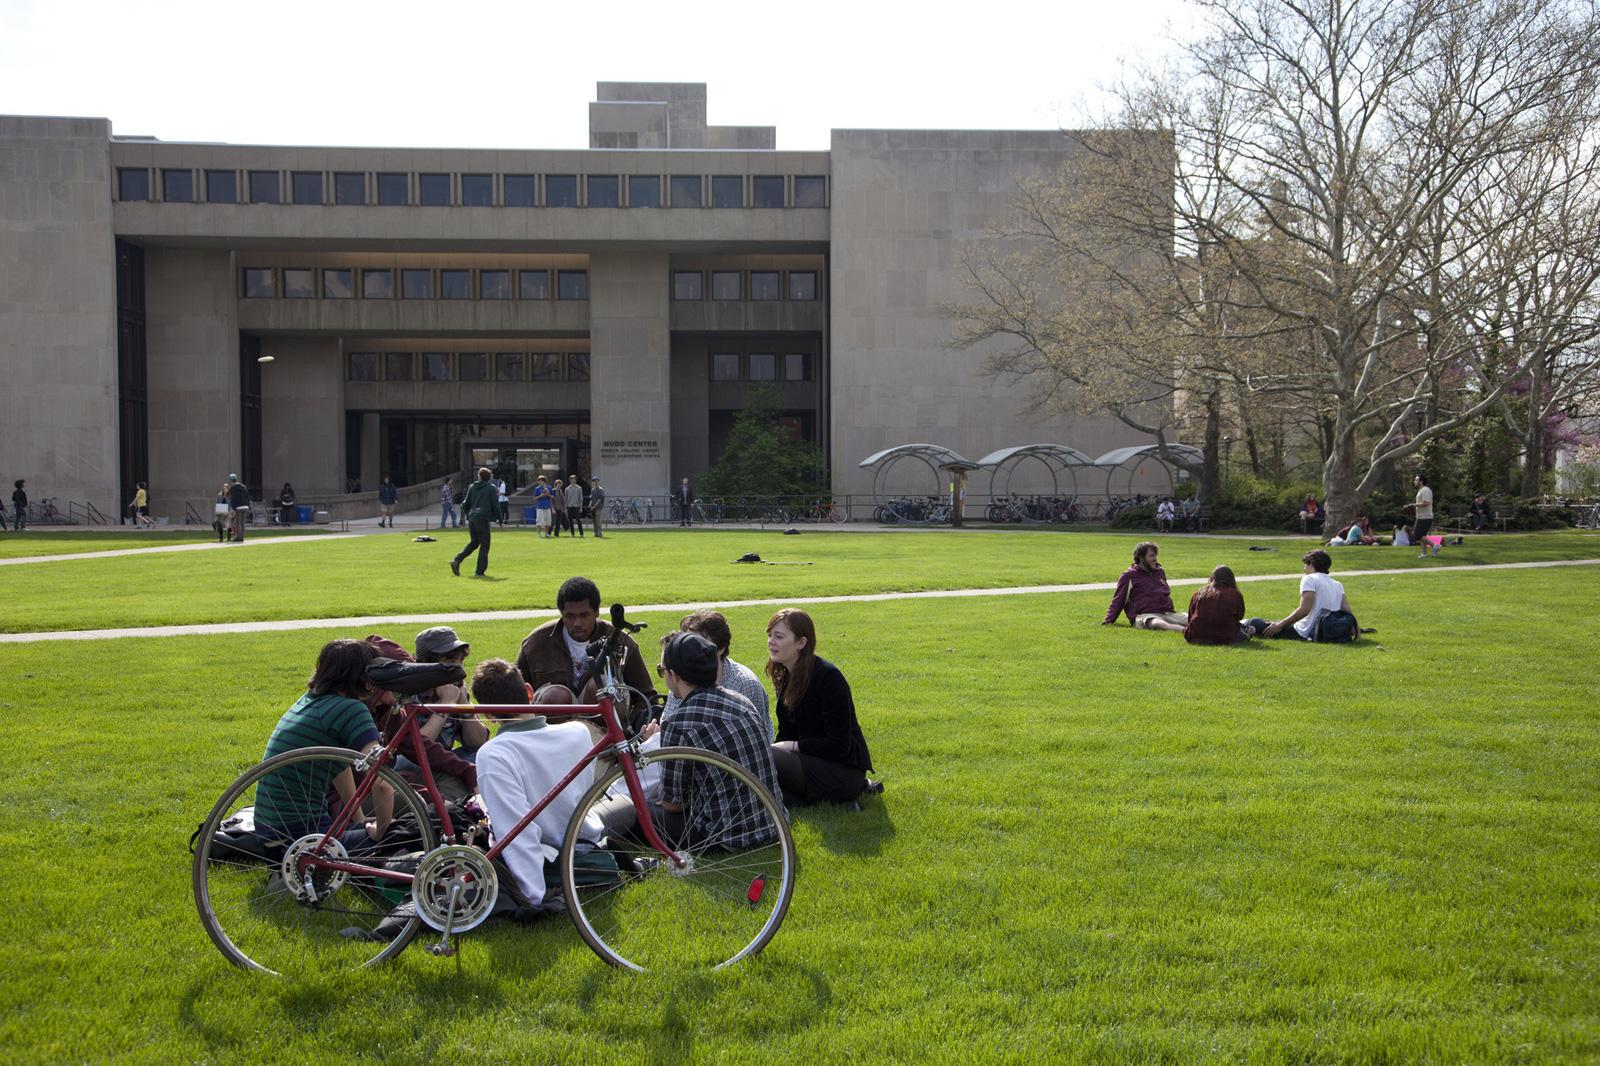 Students in the grass outside the library.